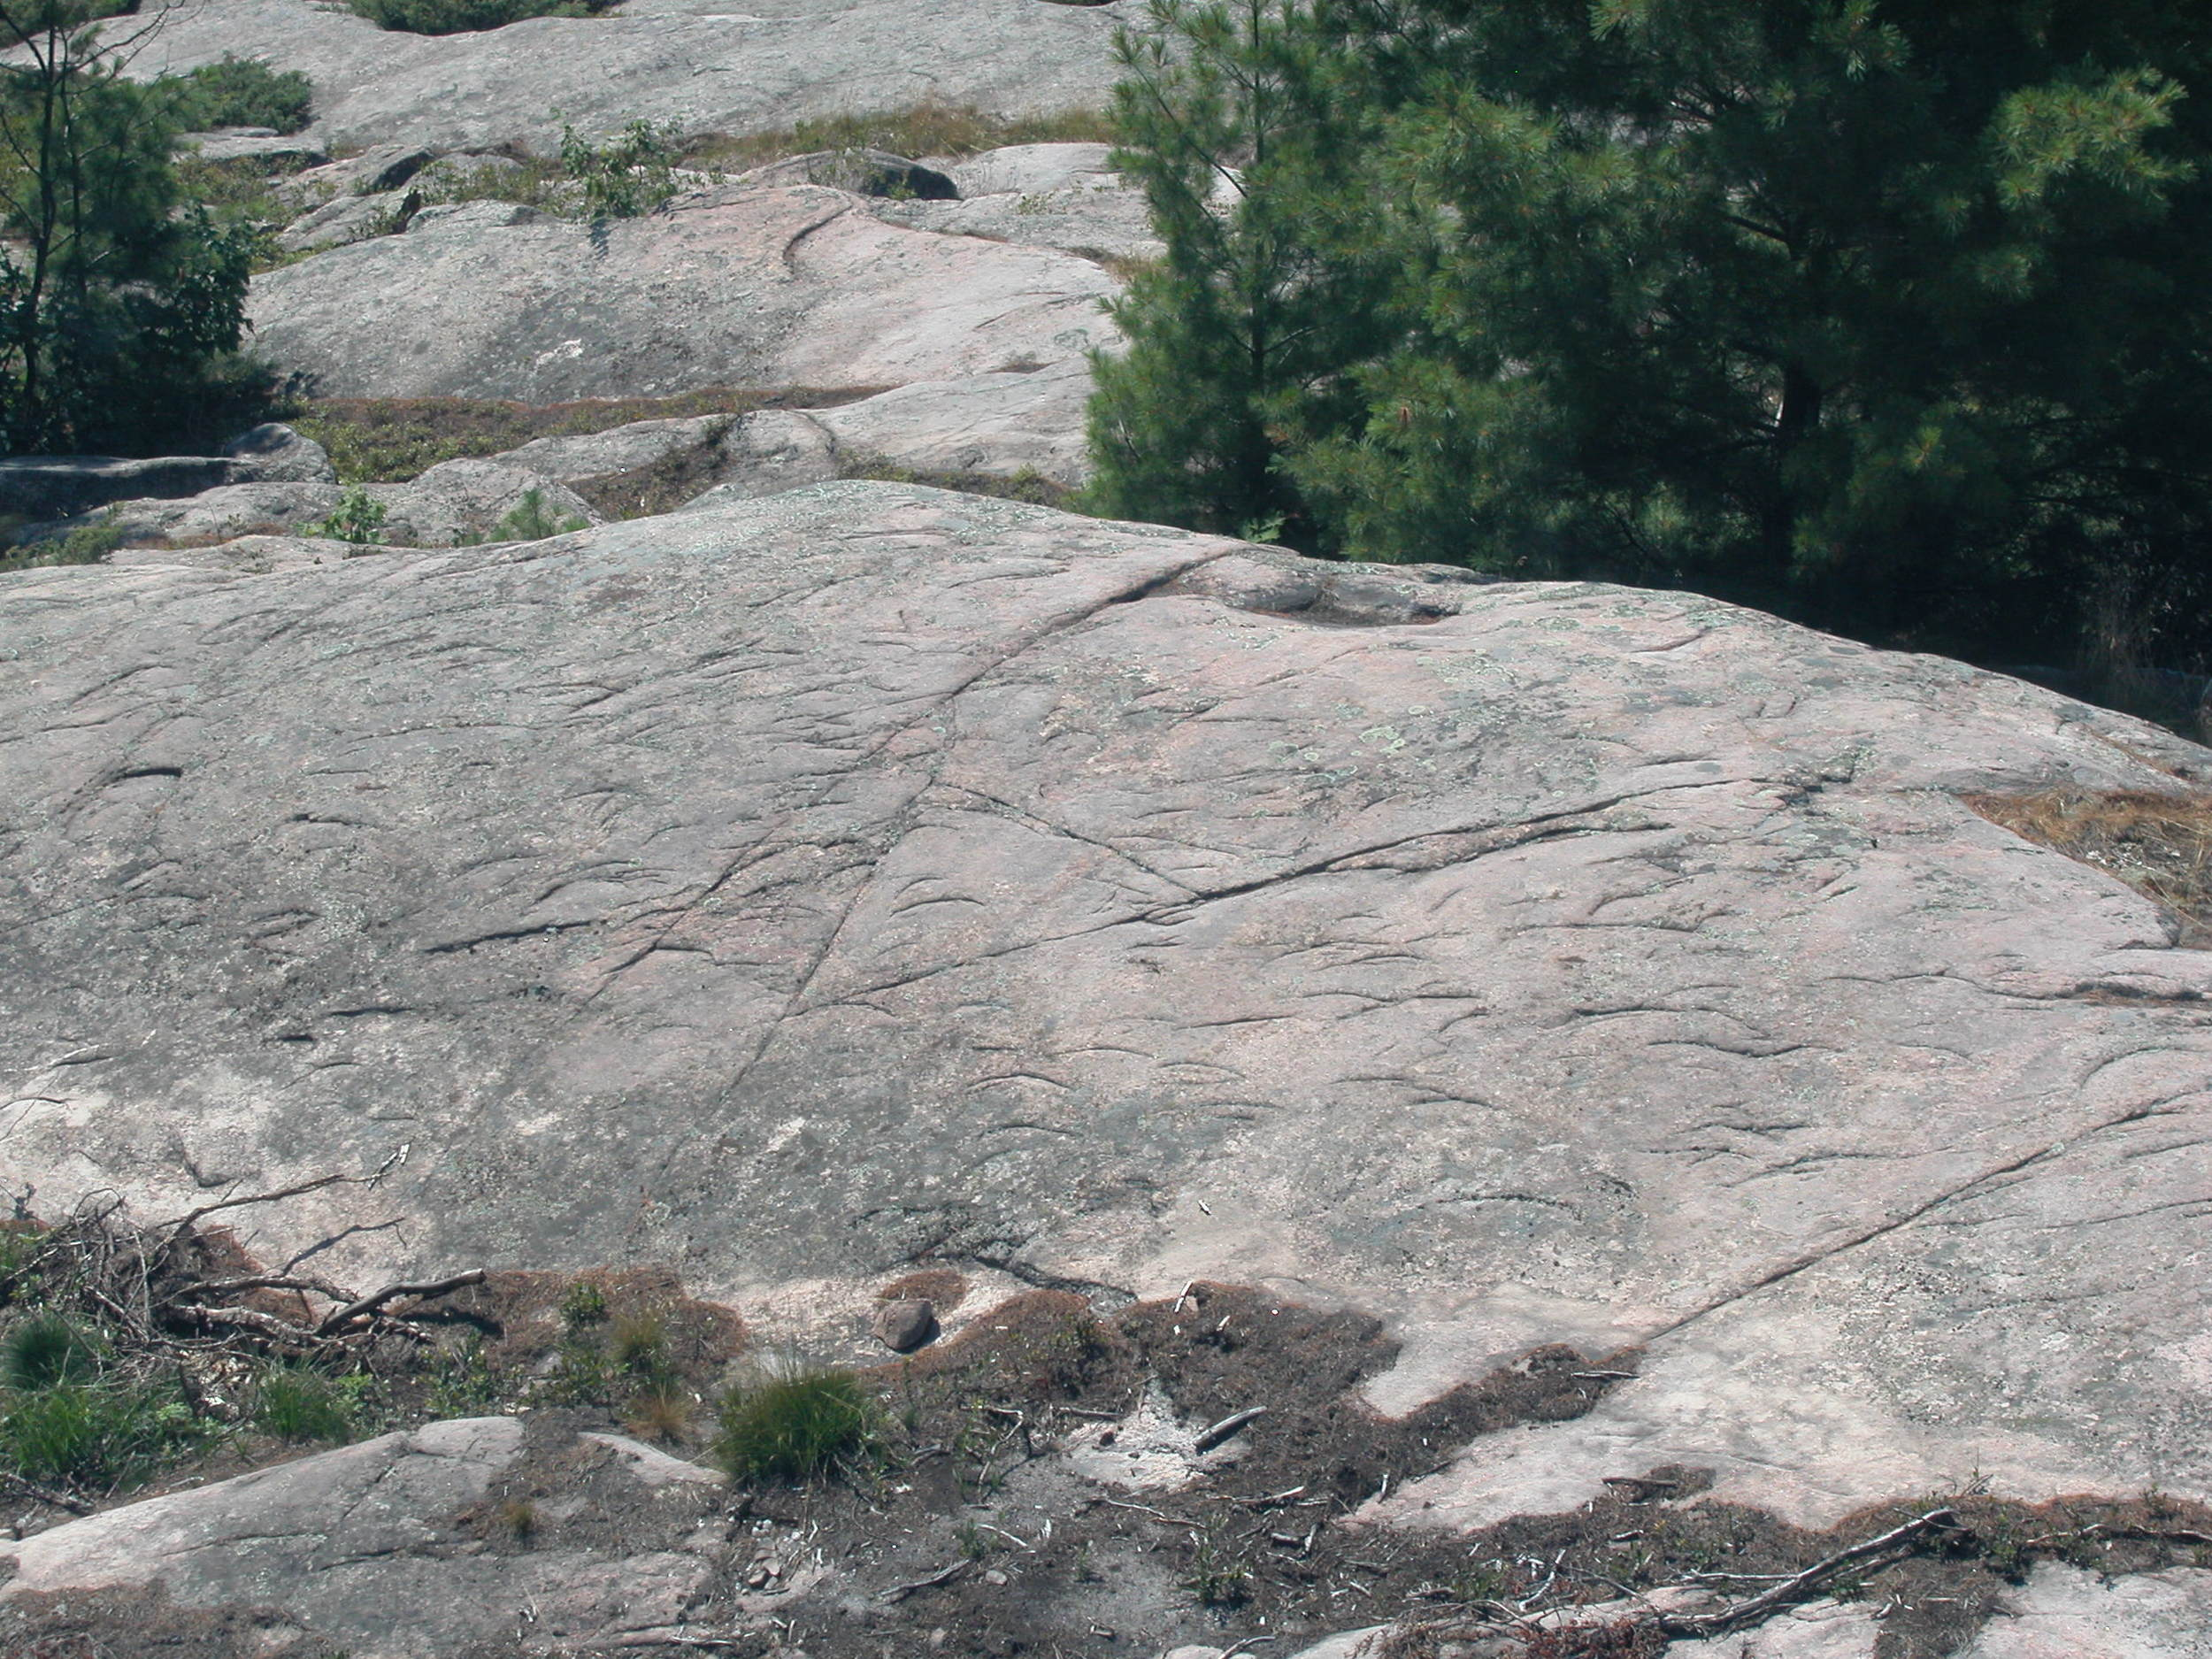 Chattermarks caused by glaciers